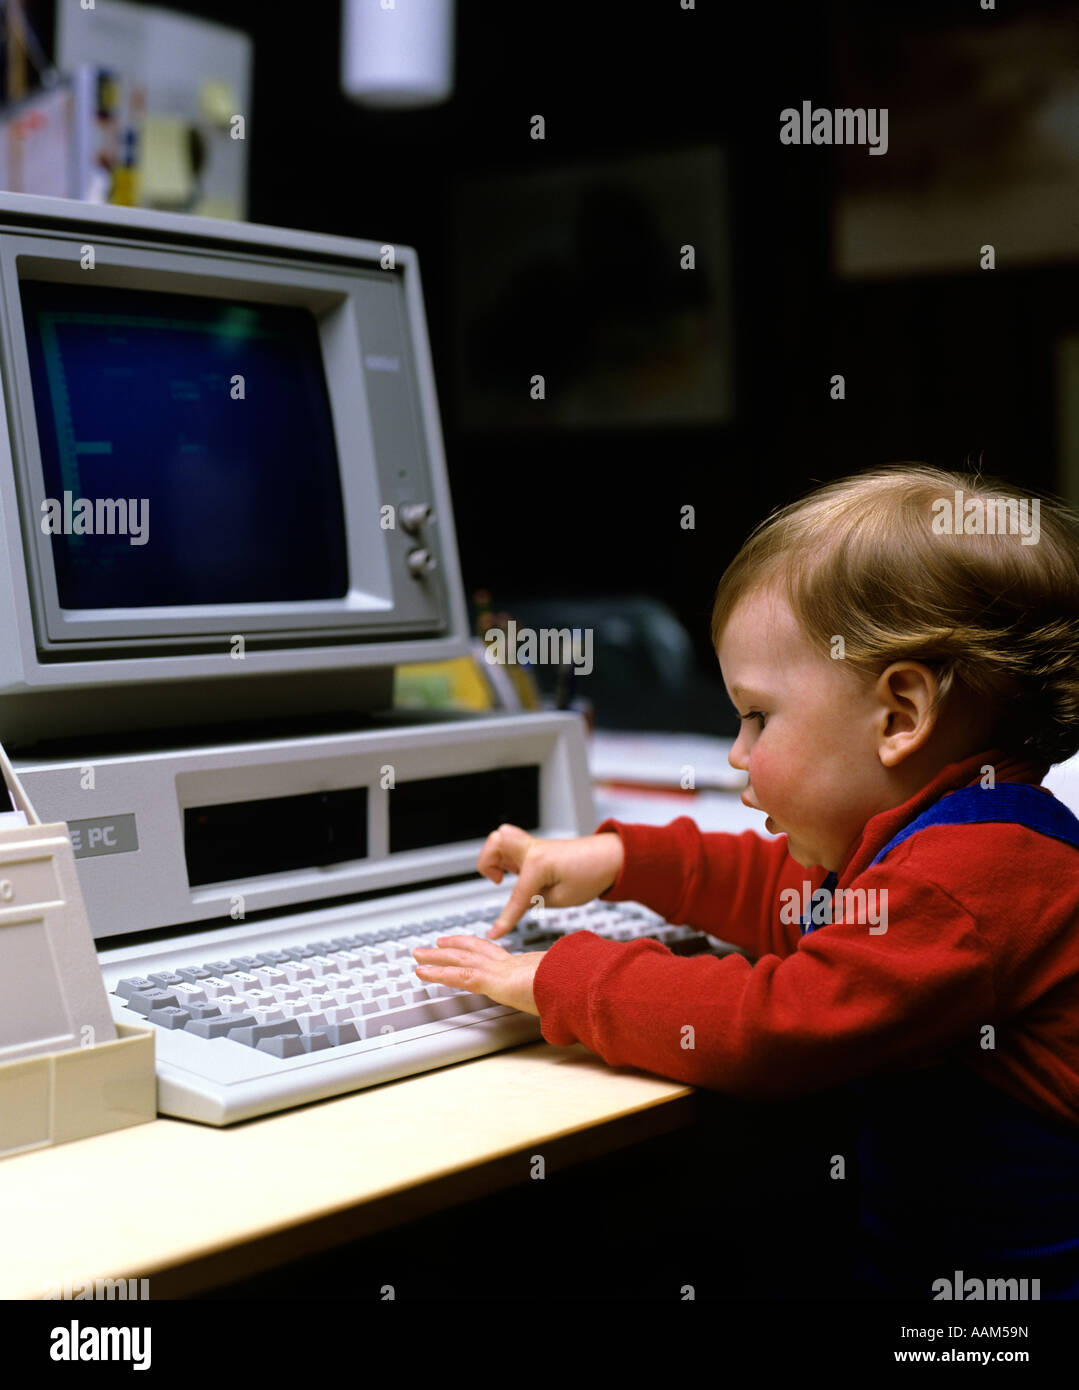 1980s YOUNG CHILD BOY GIRL PLAYING WITH EARLY IBM PC COMPUTER PRESSING KEY ON KEYBOARD Stock Photo